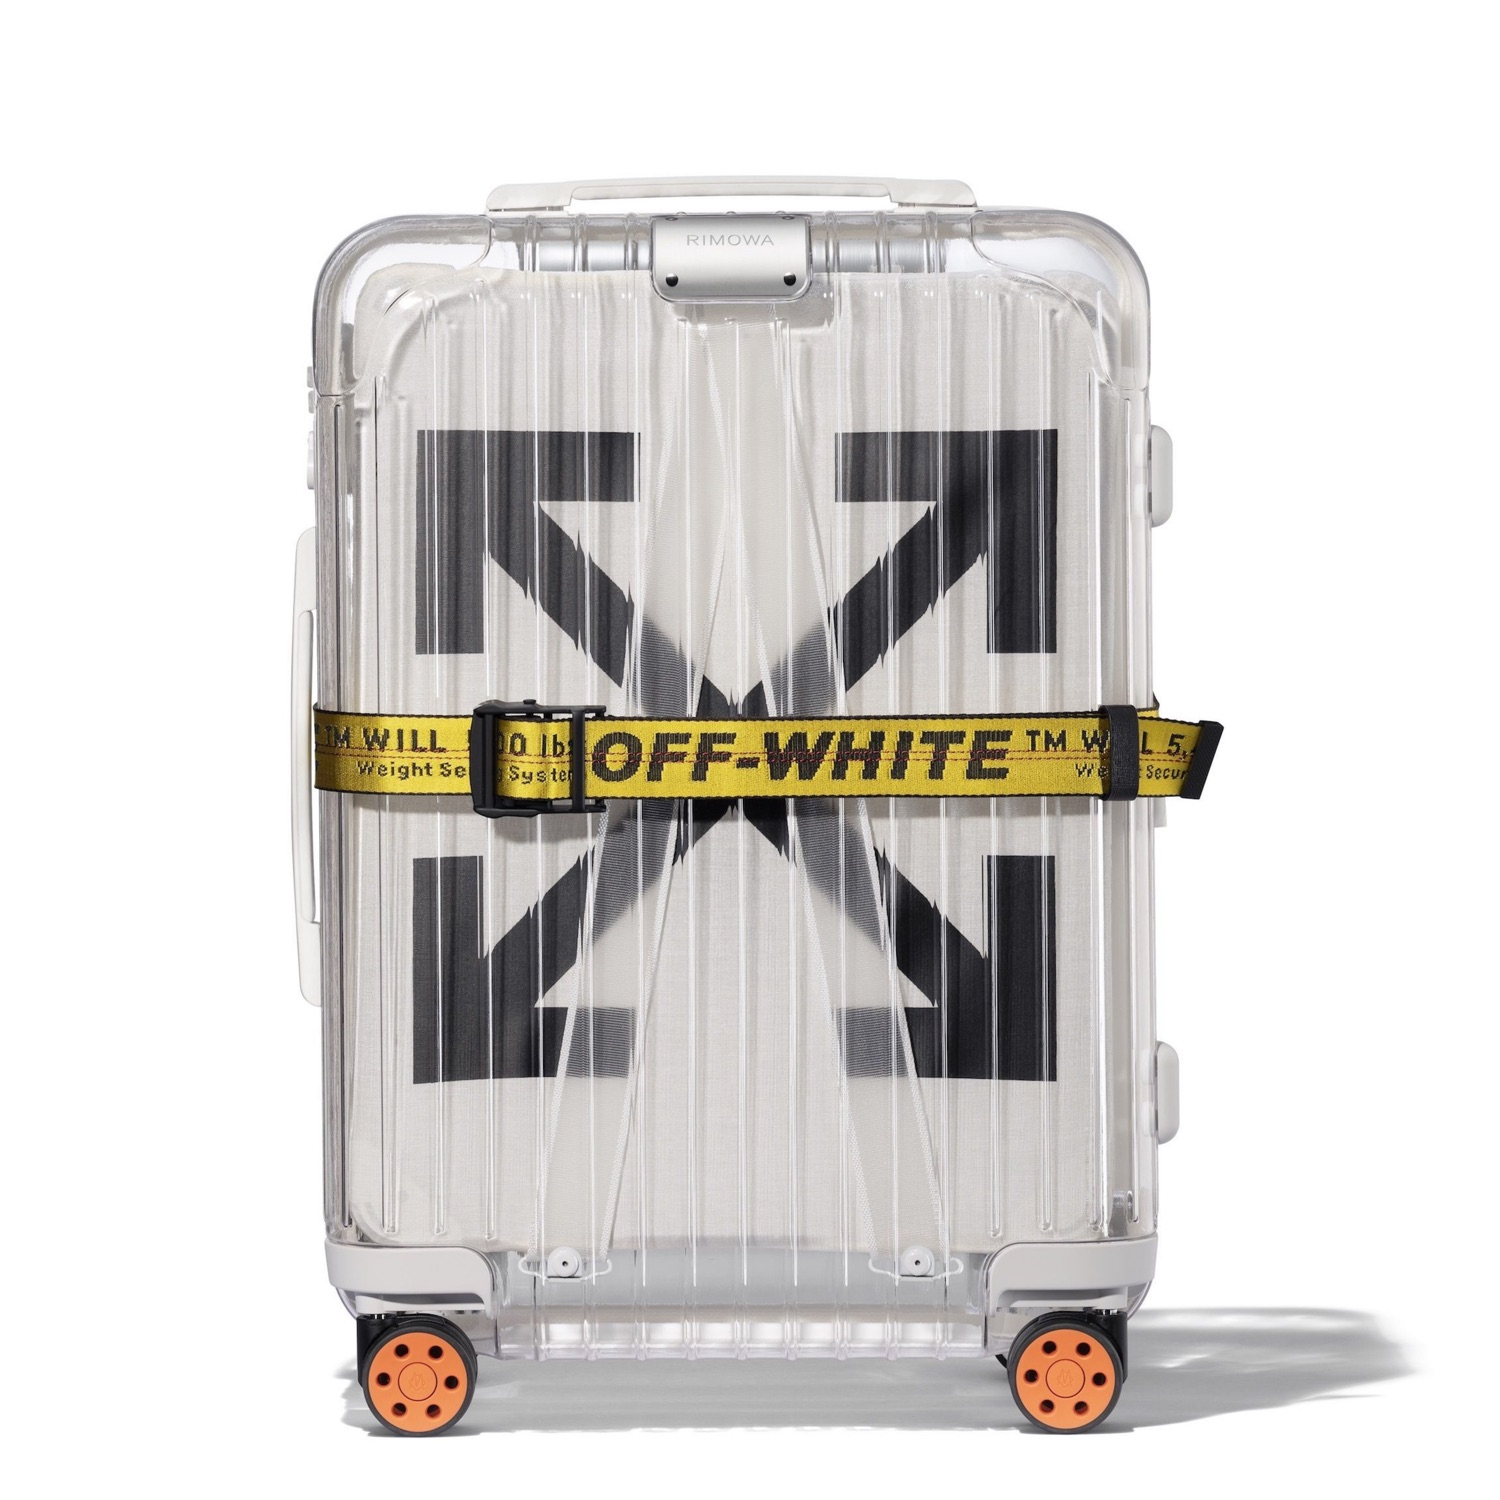 Off White X Rimowa See Through Case